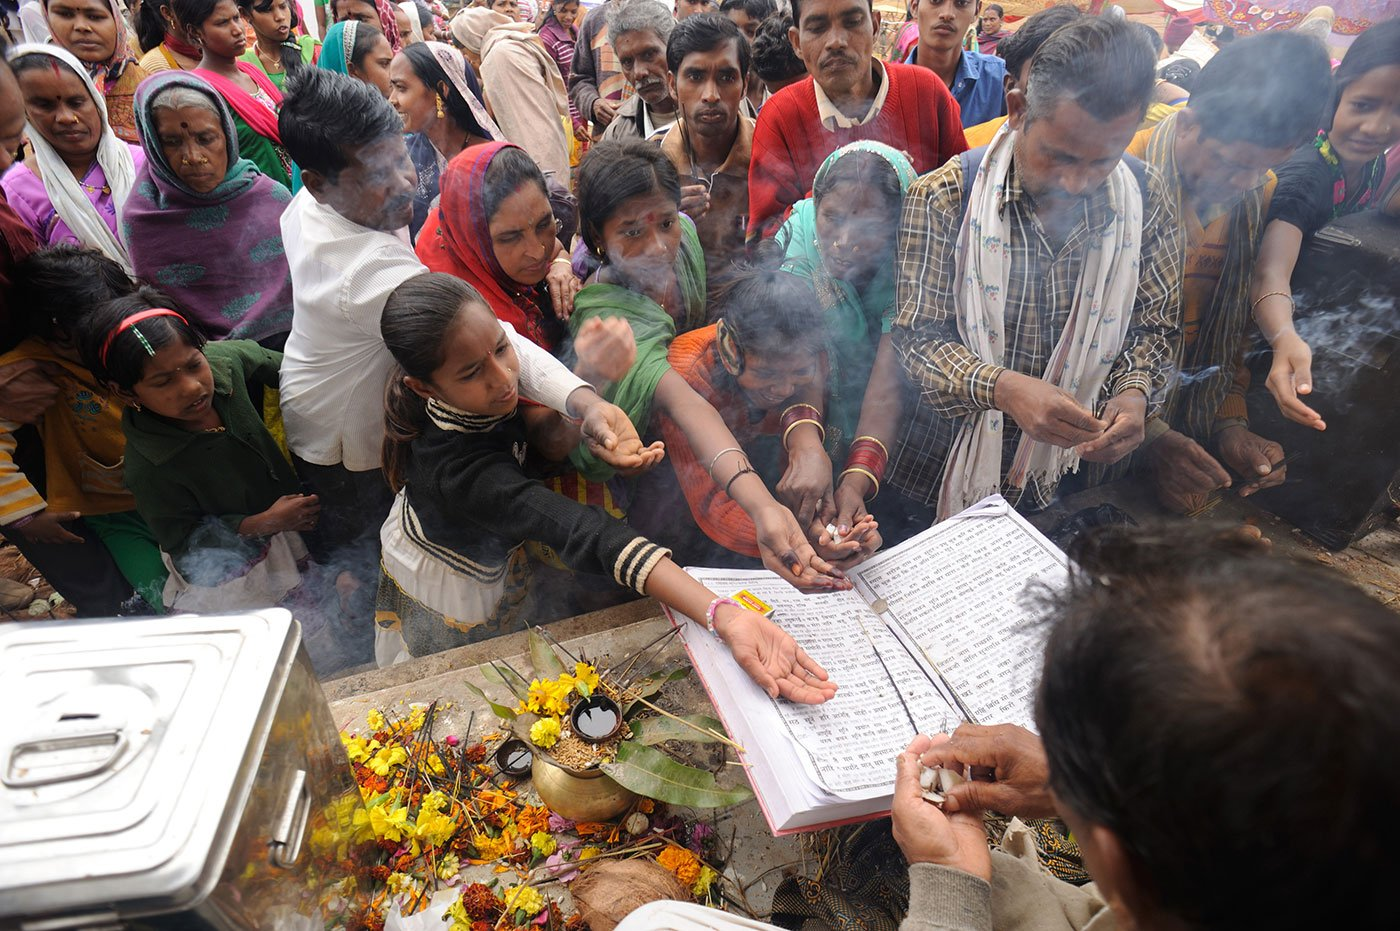 People gathered at the Bhajan mela paying their respects to the Ramcharitmanas